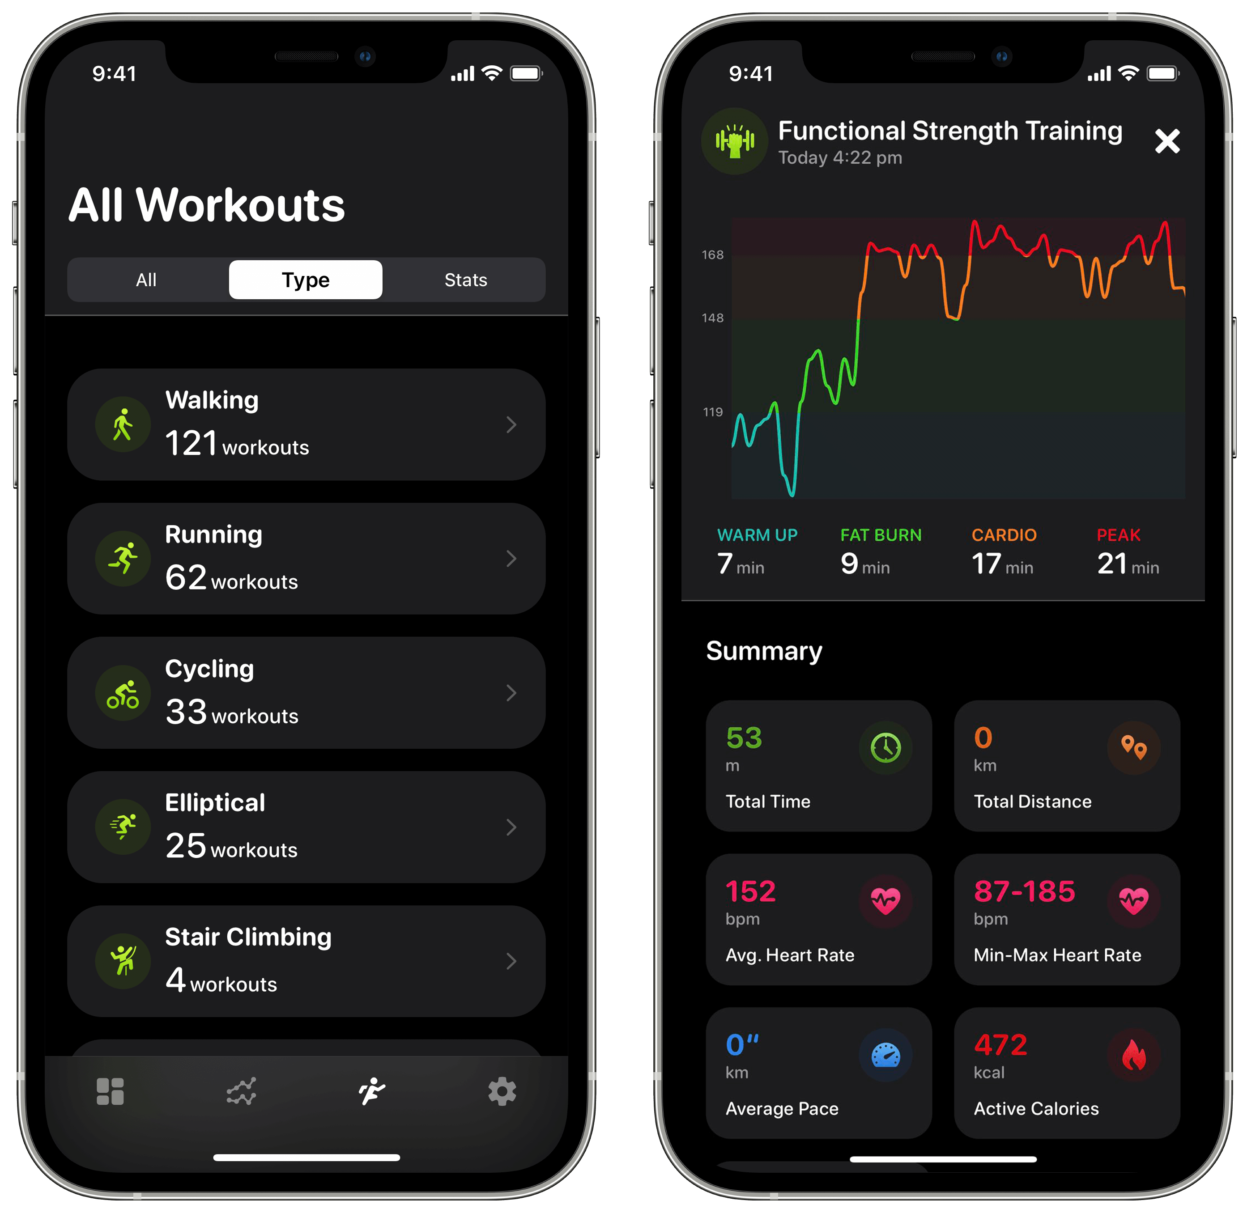 FitnessView workouts